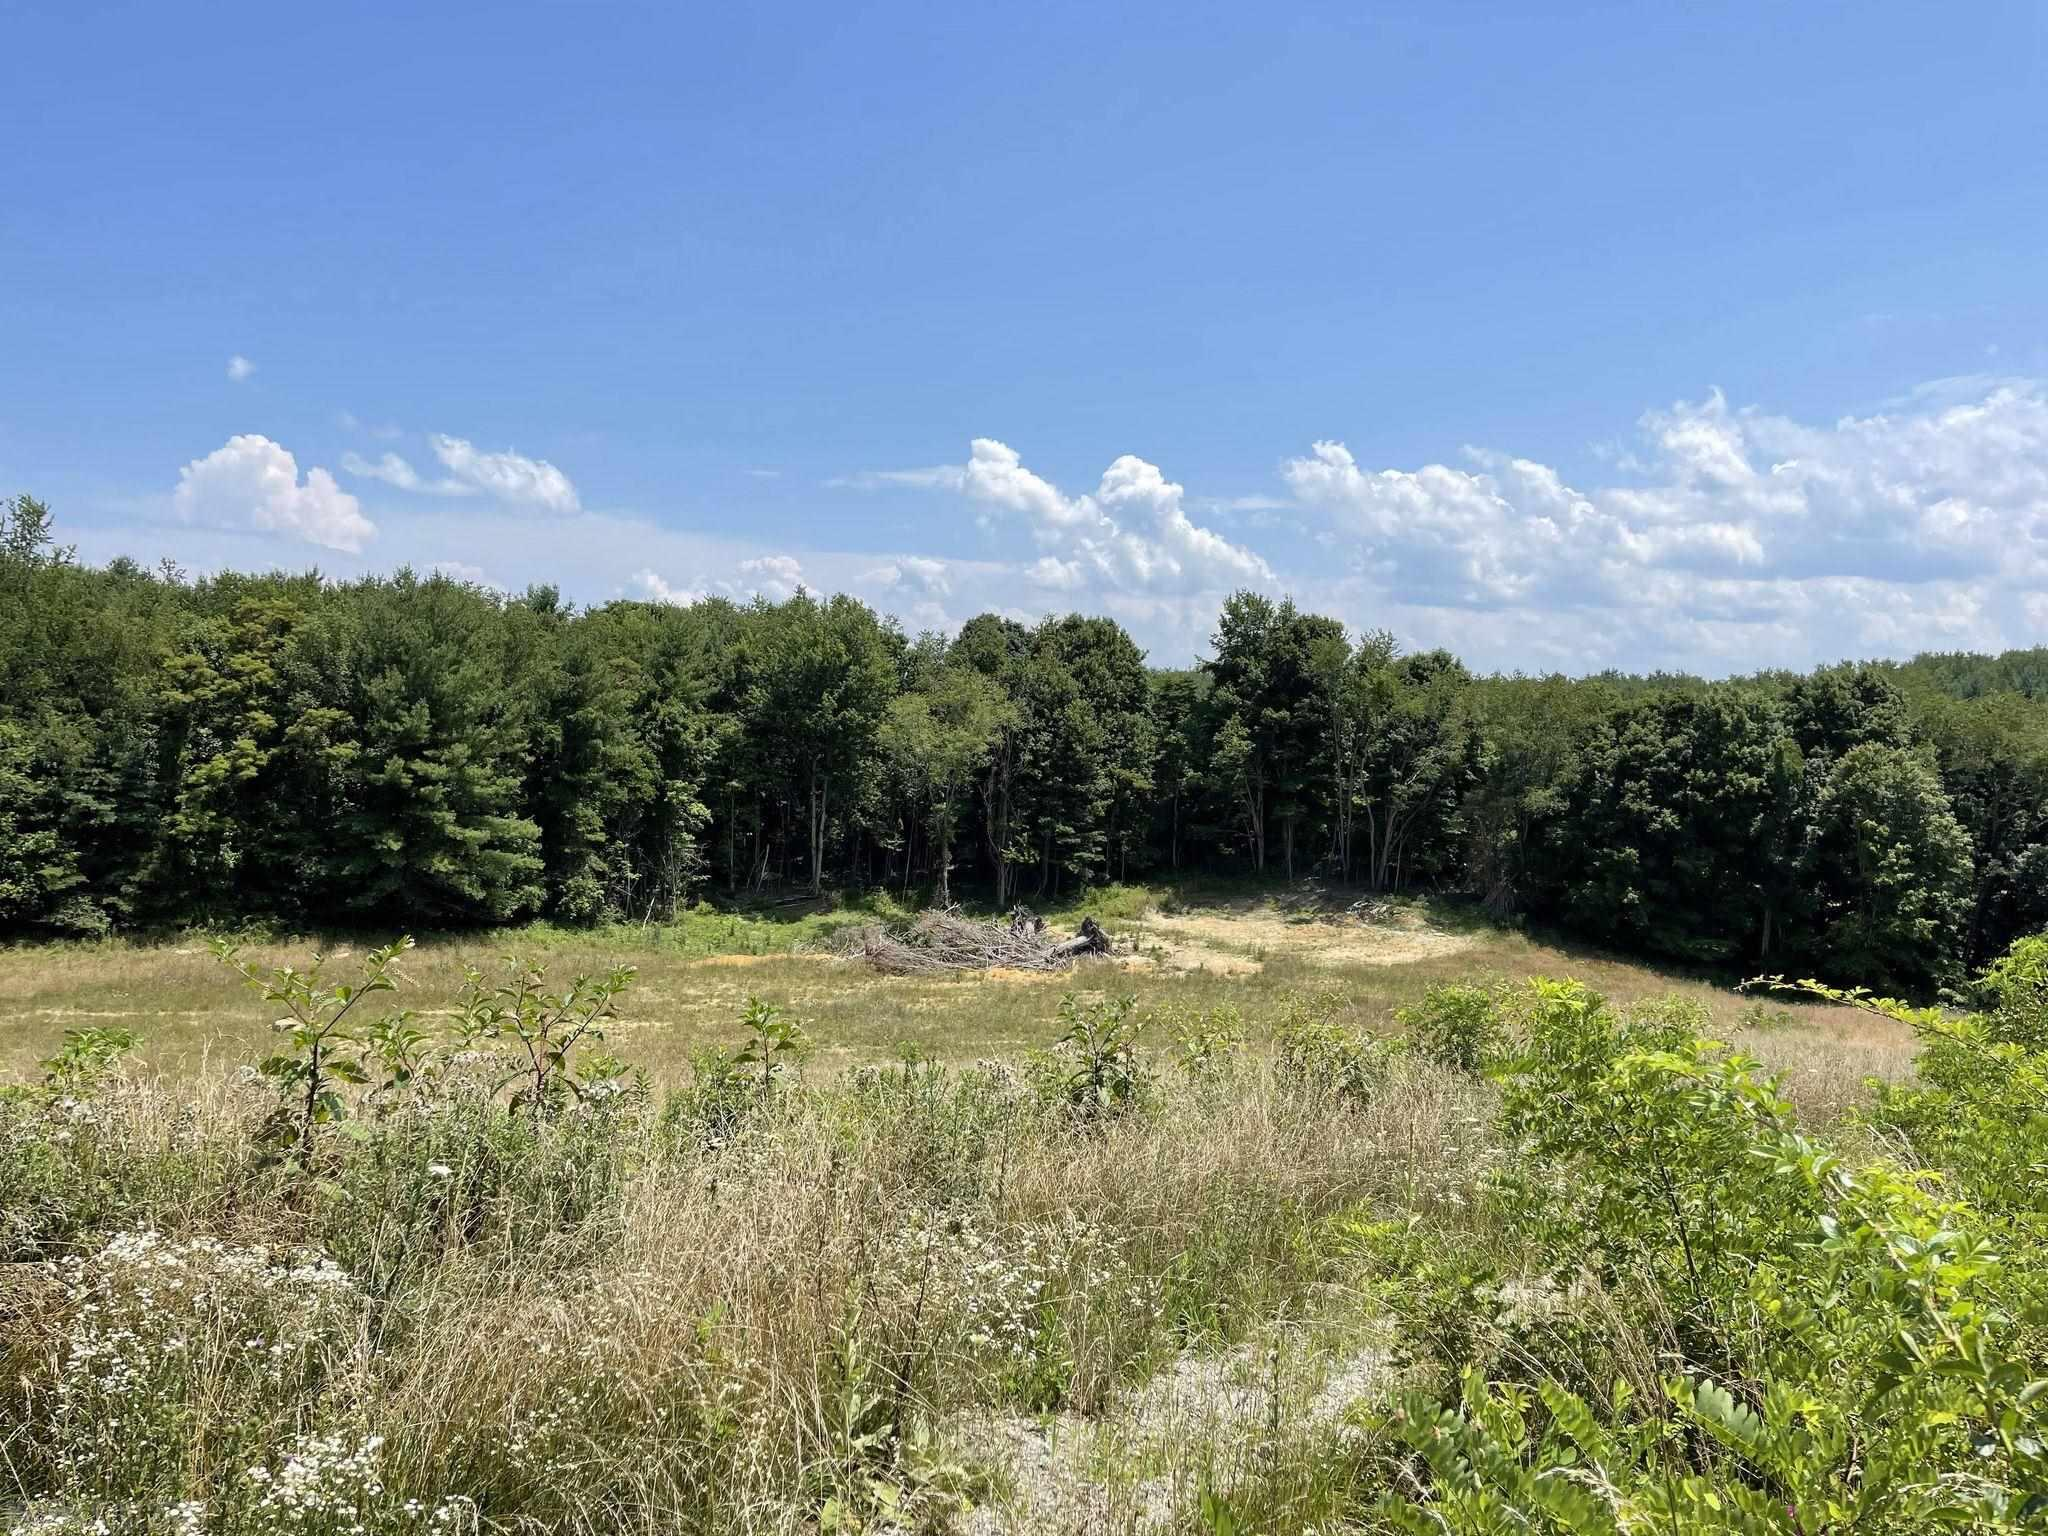 Great Location, Lots of Opportunities. Property has recently had some Grading work done. Would make a great spot to build a forever home and enjoy the scenic historic drive on Wilderness road everyday. Easy and quick access to I-81.